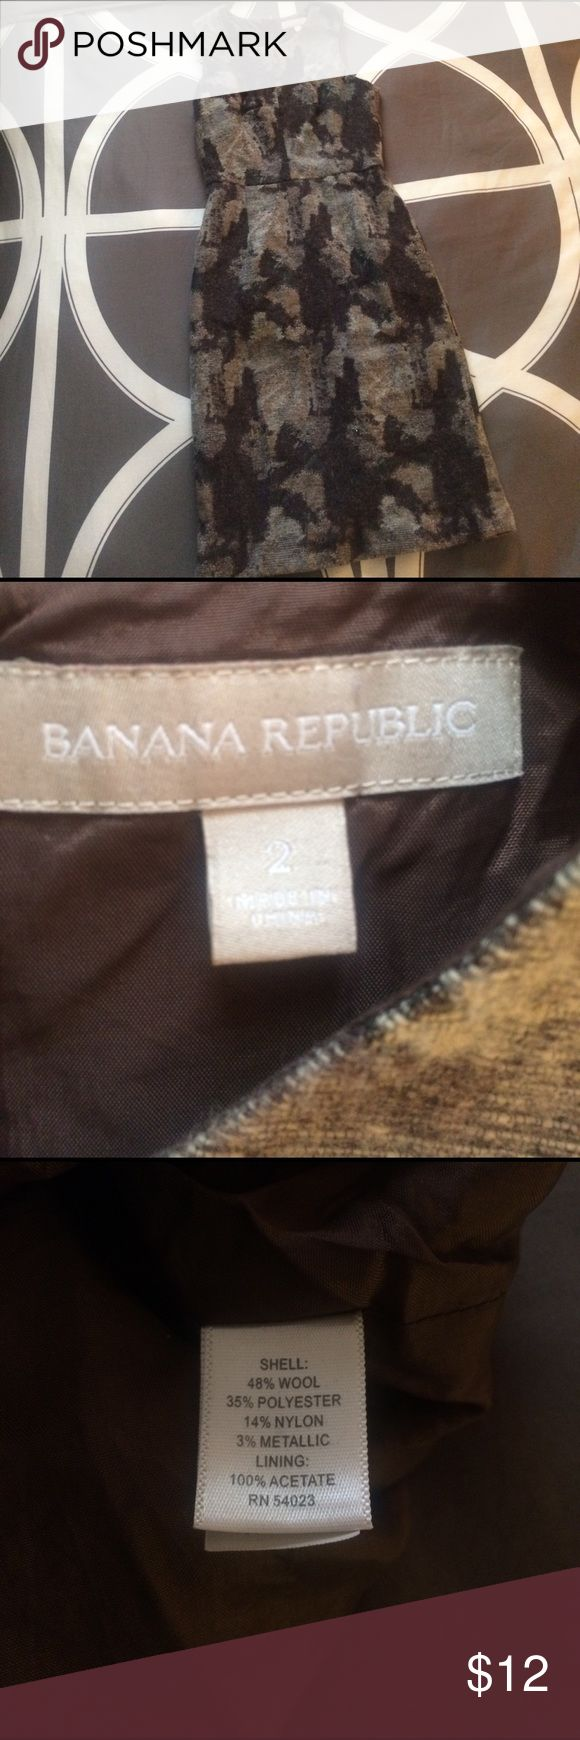 Sz 2 Banana Republic wool/poly dress Short sleeve Banana Republic Sz 2 dress. Wear a dress shirt under dress with stockings for the winter season. This is a dry clean only dress. Holiday 12 season. Comes from a smoke and pet free home. Banana Republic Dresses